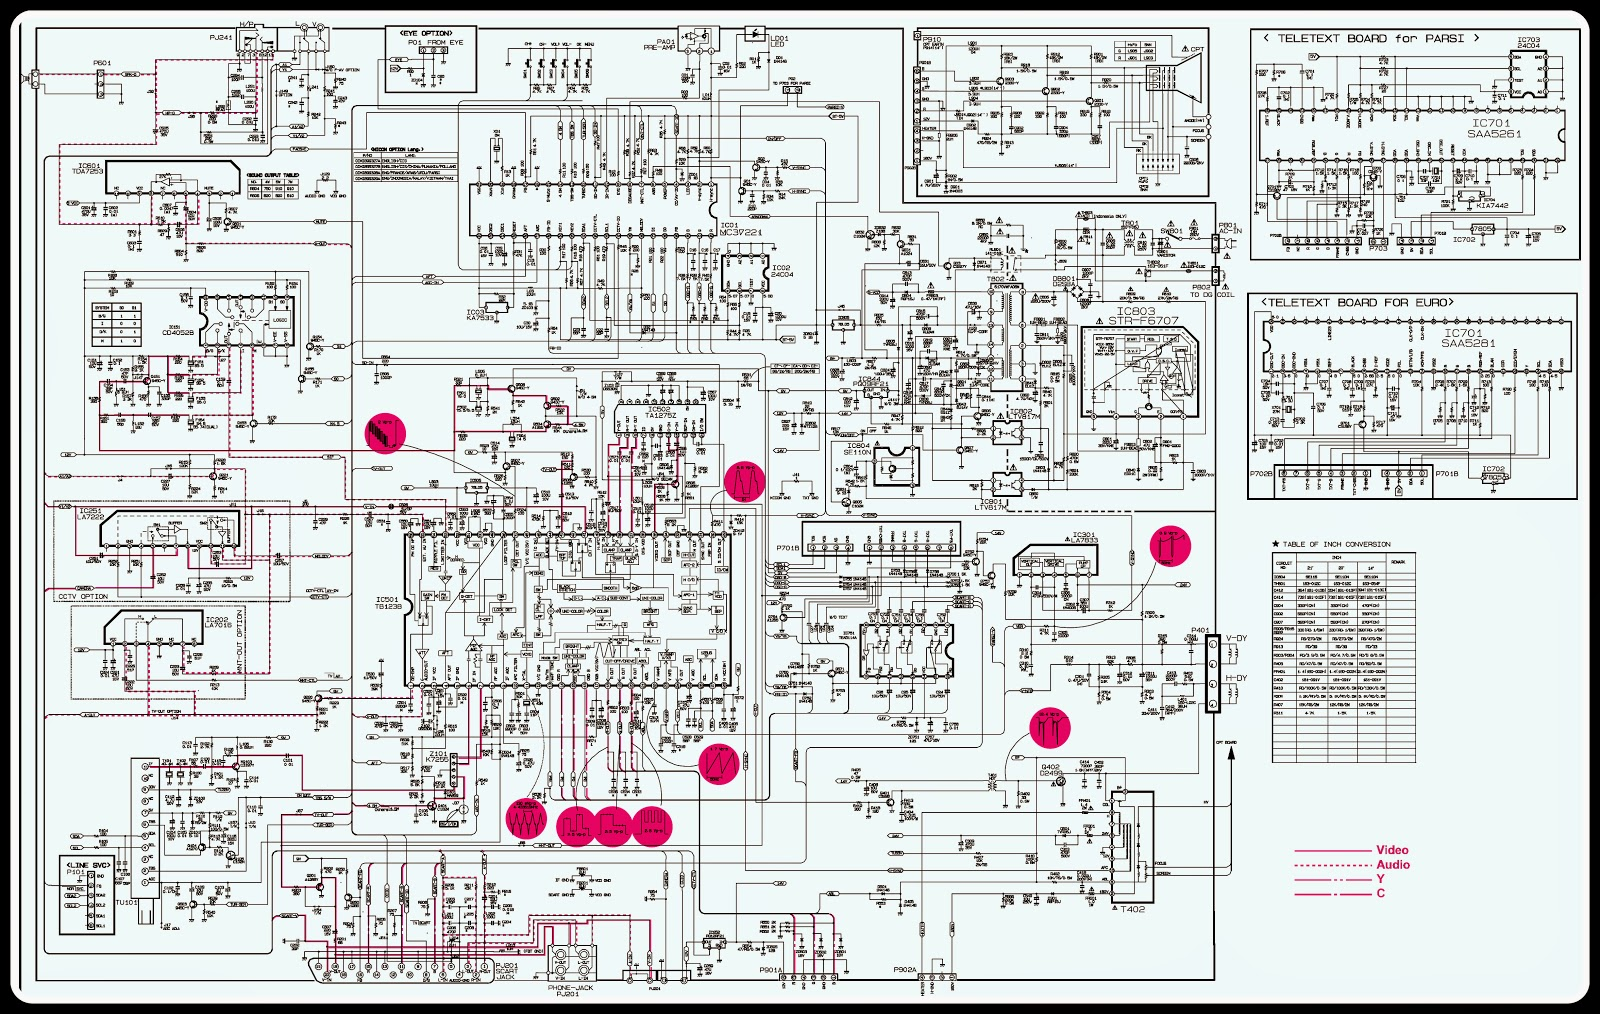 small resolution of sanyo tv wiring diagram wiring diagram dat sanyo tv wiring diagram